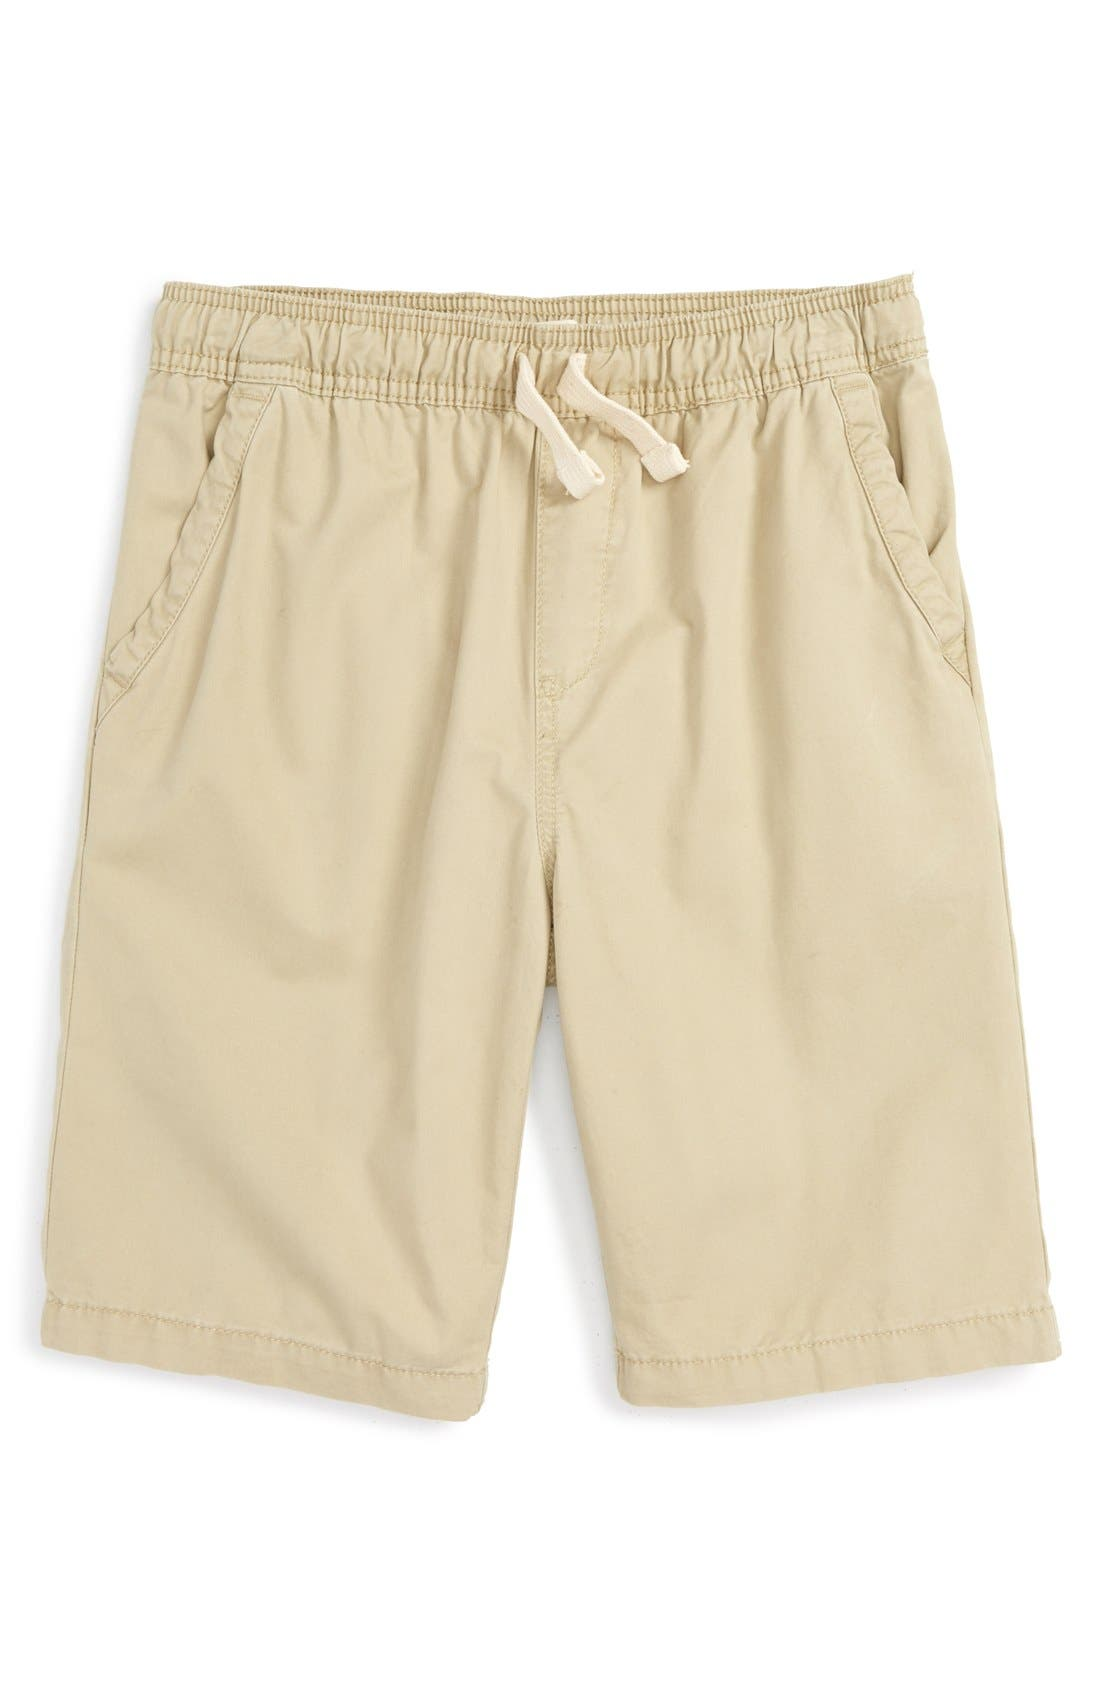 Alternate Image 1 Selected - Tucker + Tate Cotton Twill Shorts (Toddler Boys, Little Boys & Big Boys)